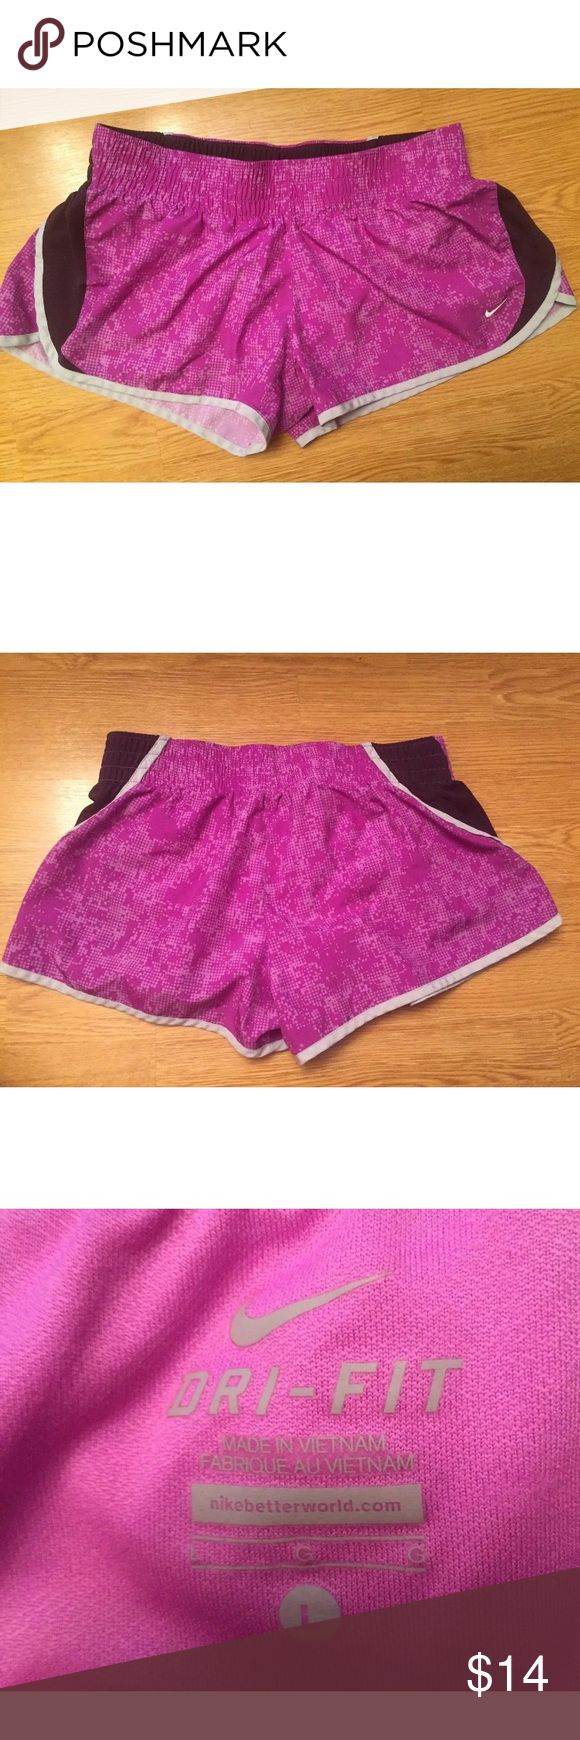 Nike Women's Dri Fit Pink & Purple Shorts Sz L Women's Nike Athletic Running Shorts •Size large •Pinkish Purple color •Dri Fit line from Nike •Stretchy waist band •Breathable material •Great condition - no flaws! •Length: 9.5 Inches & Waist: 15 Inches  Let me know if you have any questions and make me an offer! Nike Shorts